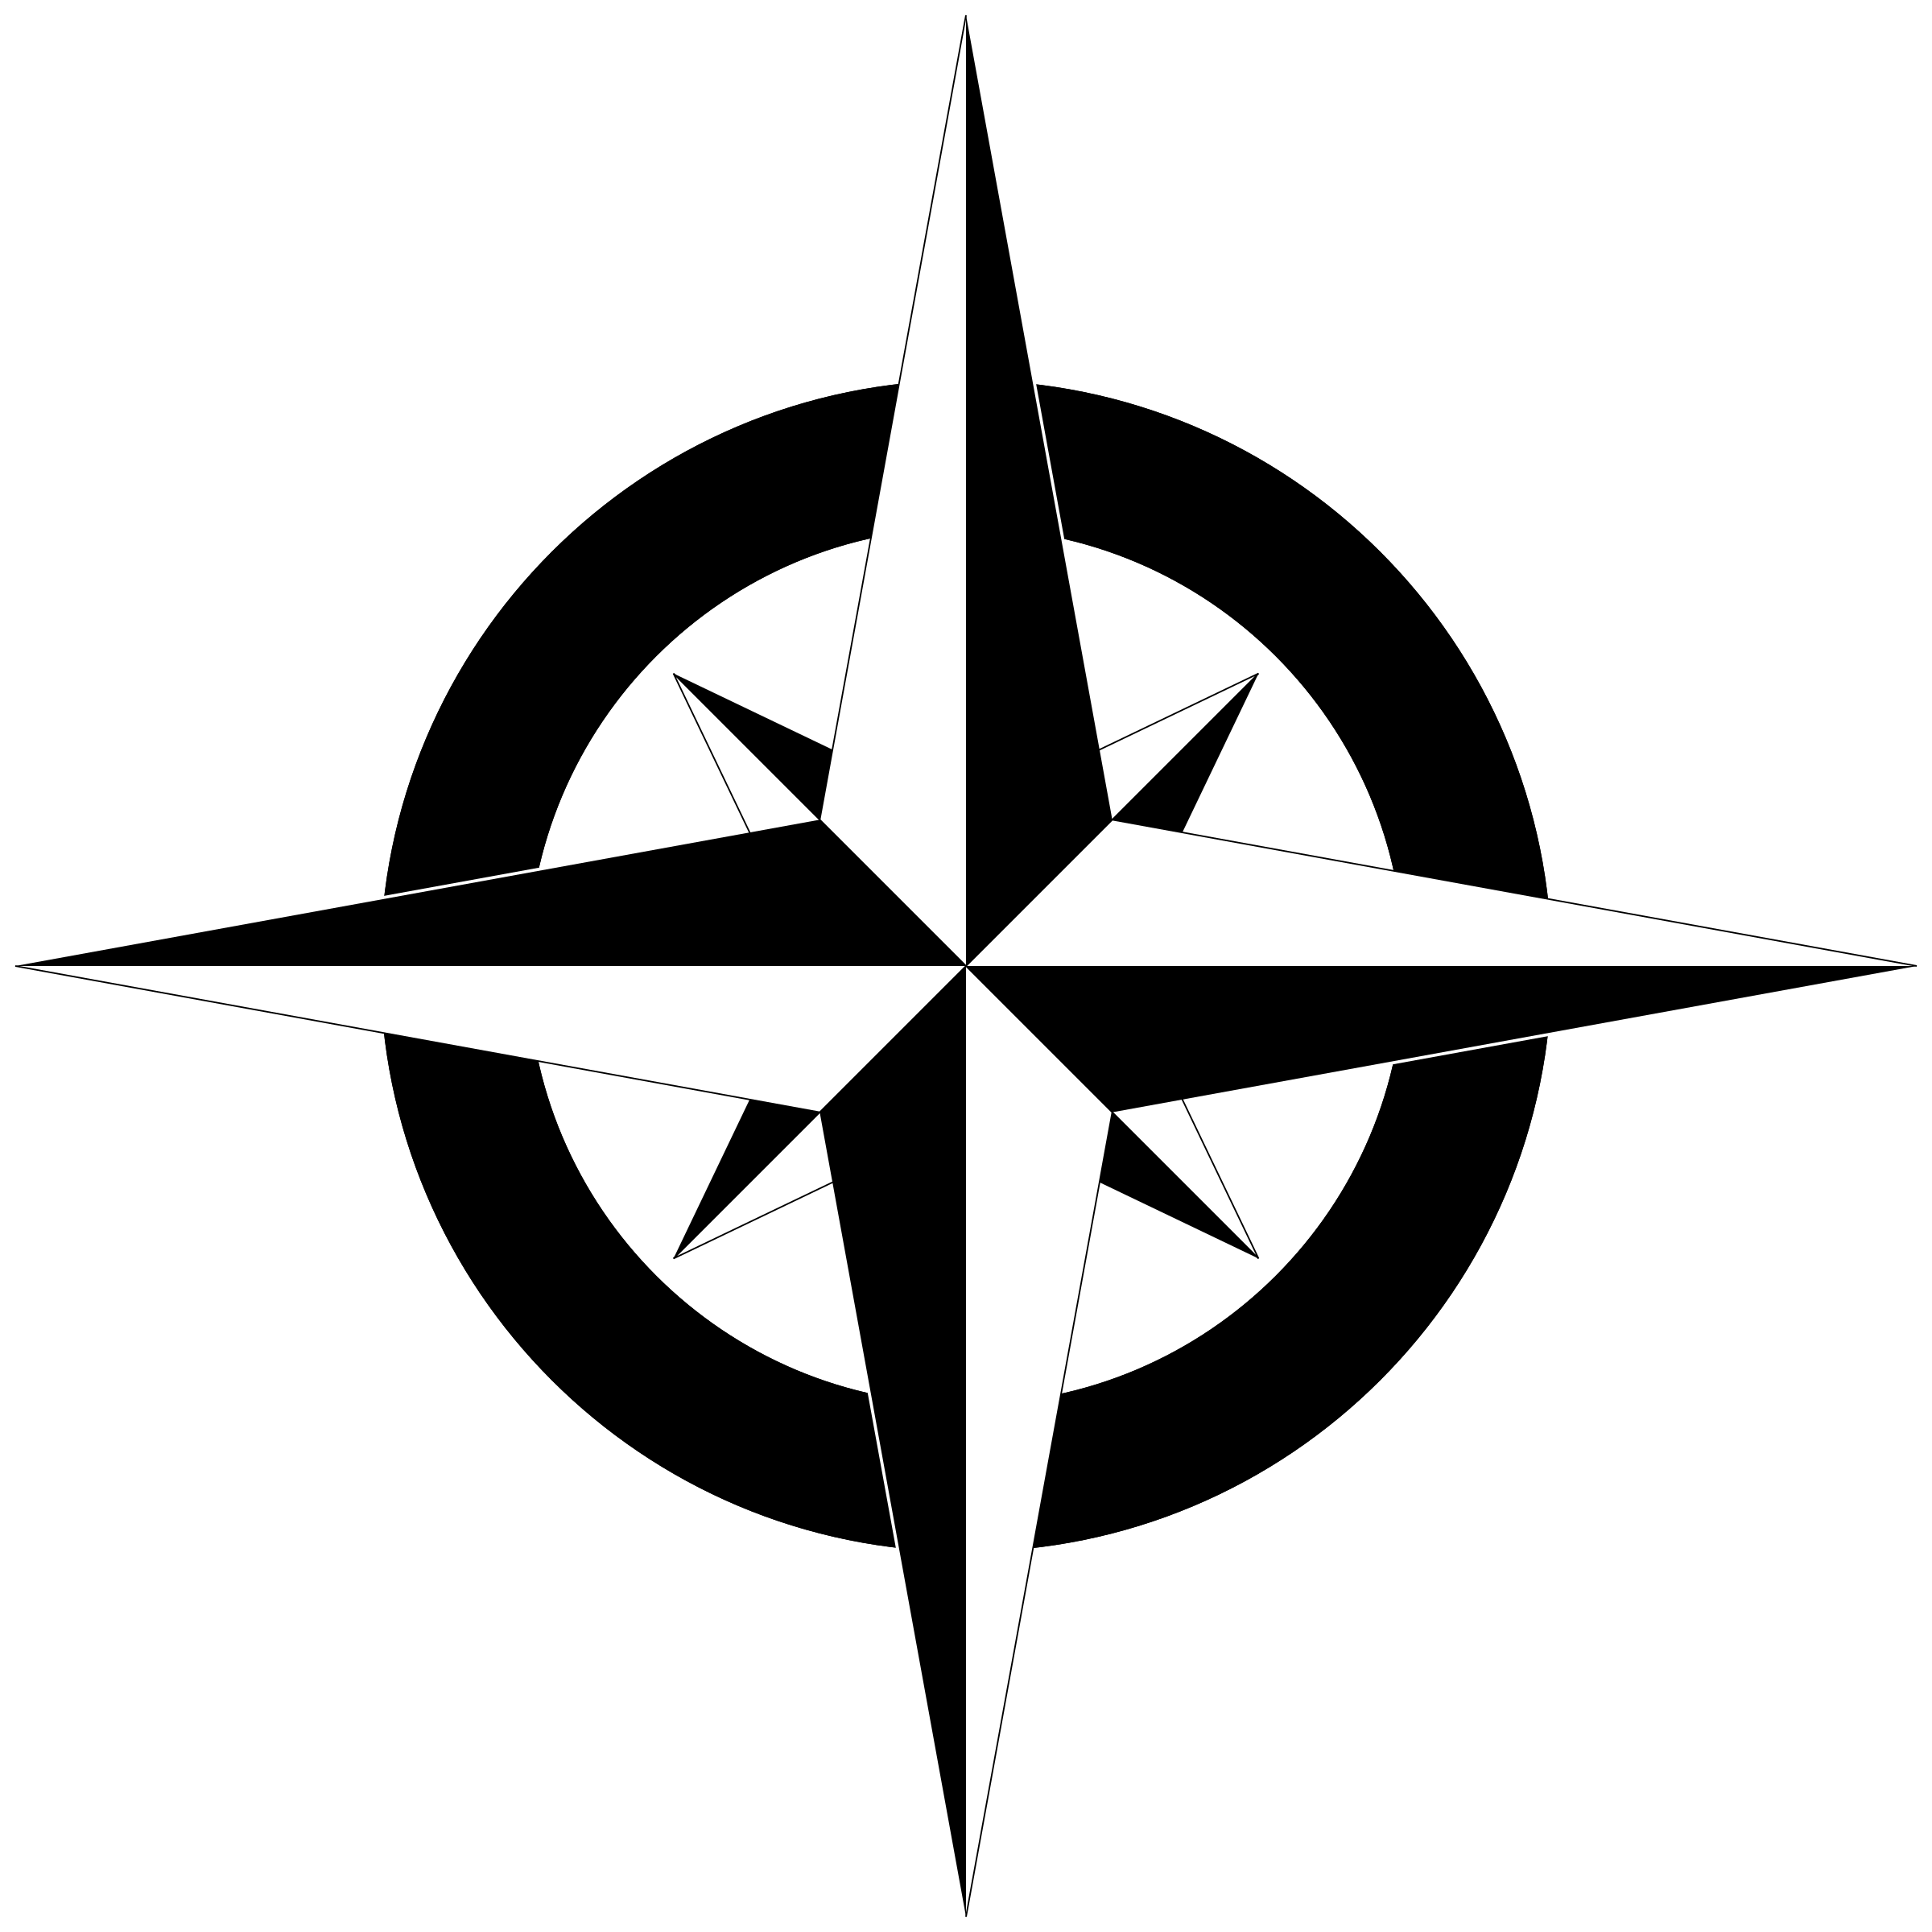 This free Icons Png design of Compass Rose Bu0026W PlusPng.com  - Compass Rose PNG Black And White